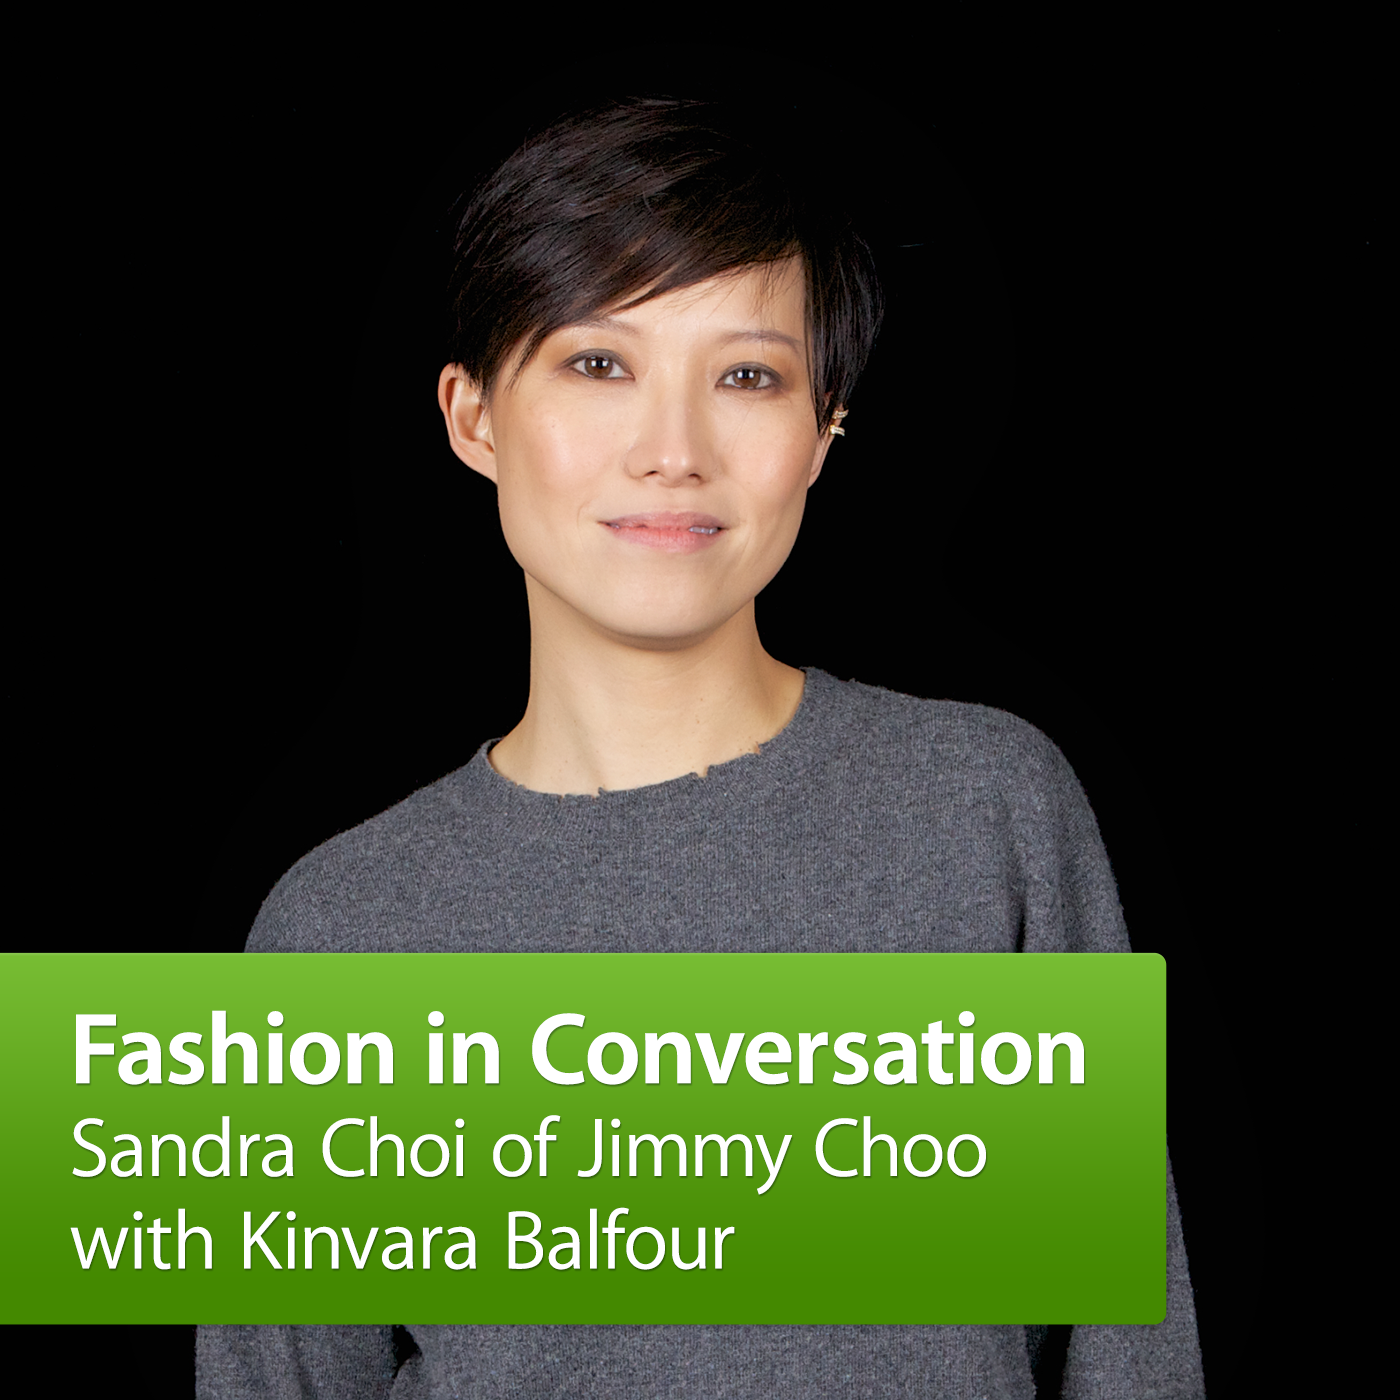 Sandra Choi in Conversation with Kinvara Balfour